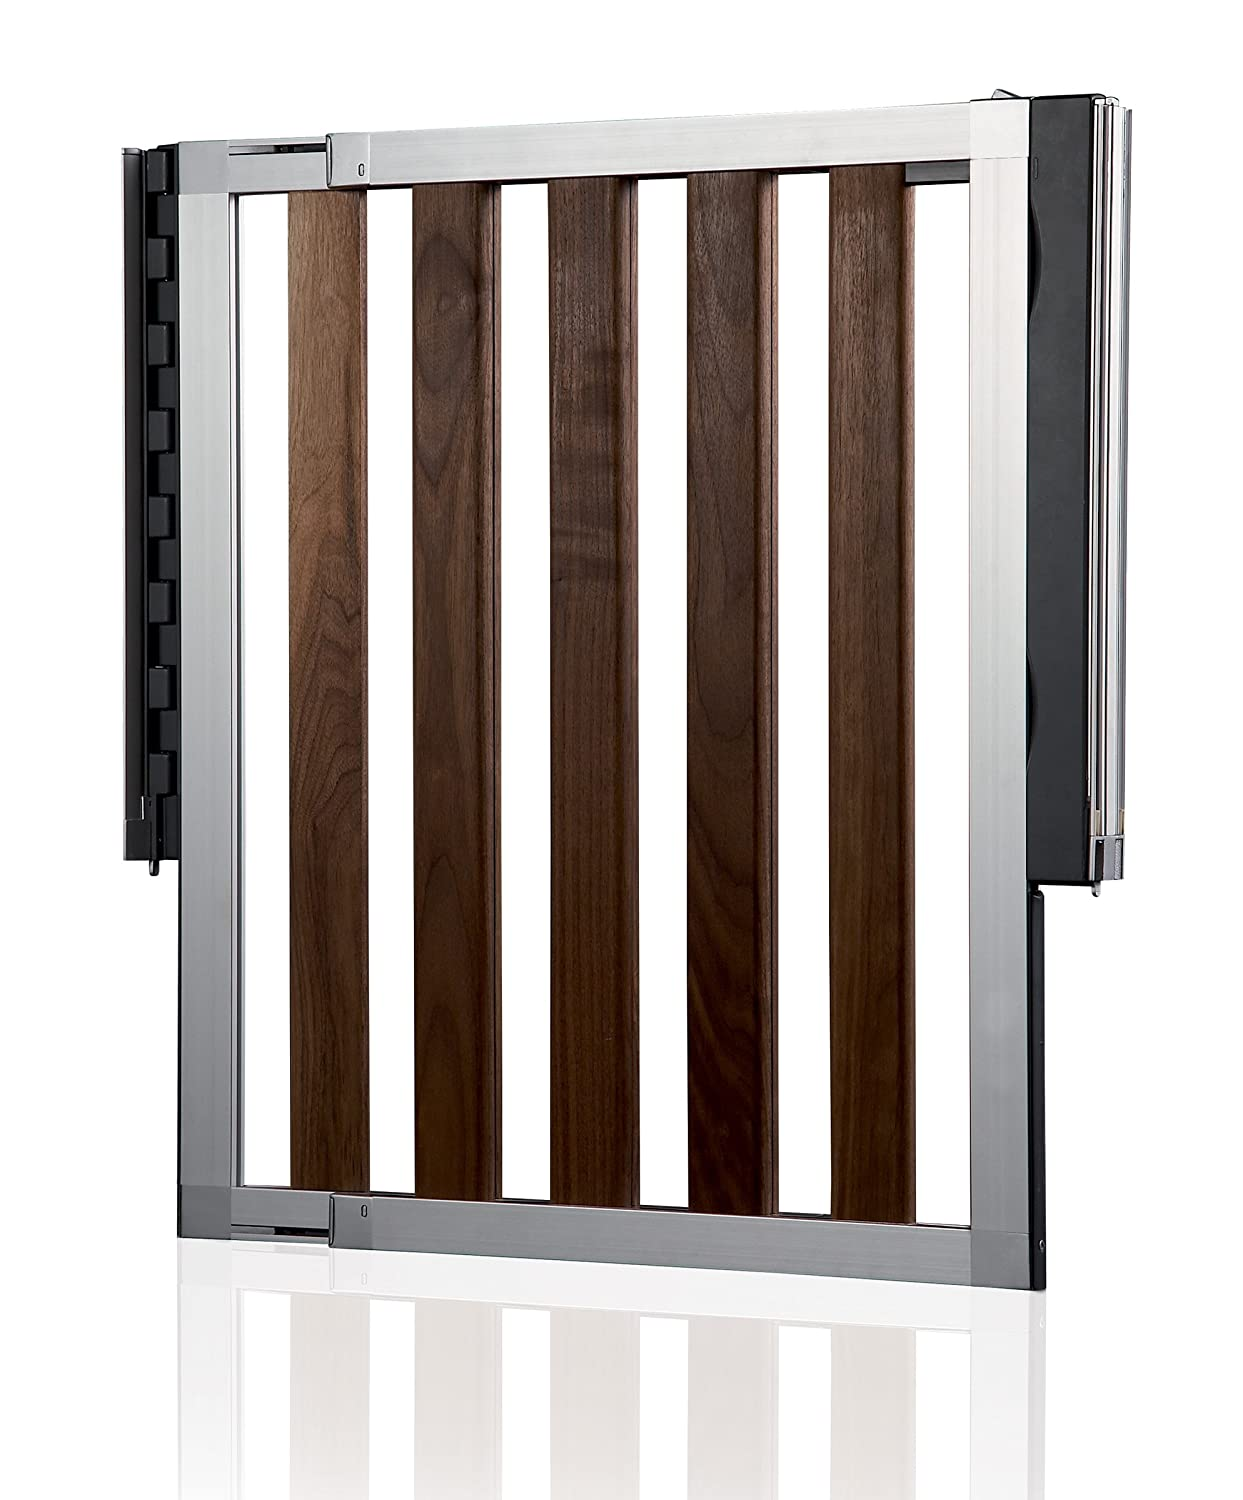 modern baby gate img  img  modern baby gate - numi extending dark wood safety gate amazoncouk baby